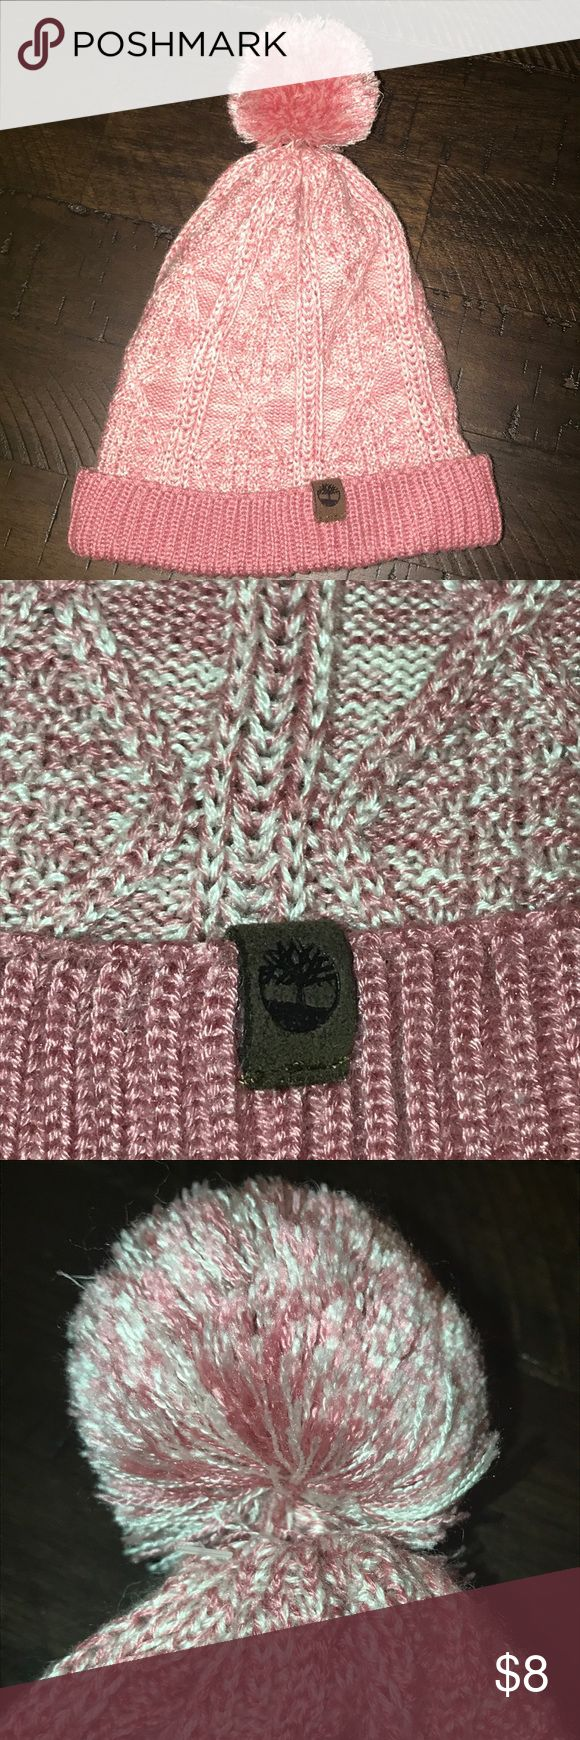 Timberland Cuffed Pom Beanie (Infant) – One Size ⭐️ LIKE NEW ⭐️ Timberland Cuffed Pom Beanie   Size: One Size Fits Most – Infant / Small Toddler Color(s): Pink & White Material(s): 85% Acrylic / 15% Wool  ⭐️ This Beanie Is In EXCELLENT Condition ⭐️  ⭐️ Offers Welcome  📩 Bundle Items For Private Offers 📦 Fast Shipping! Timberland Accessories Hats